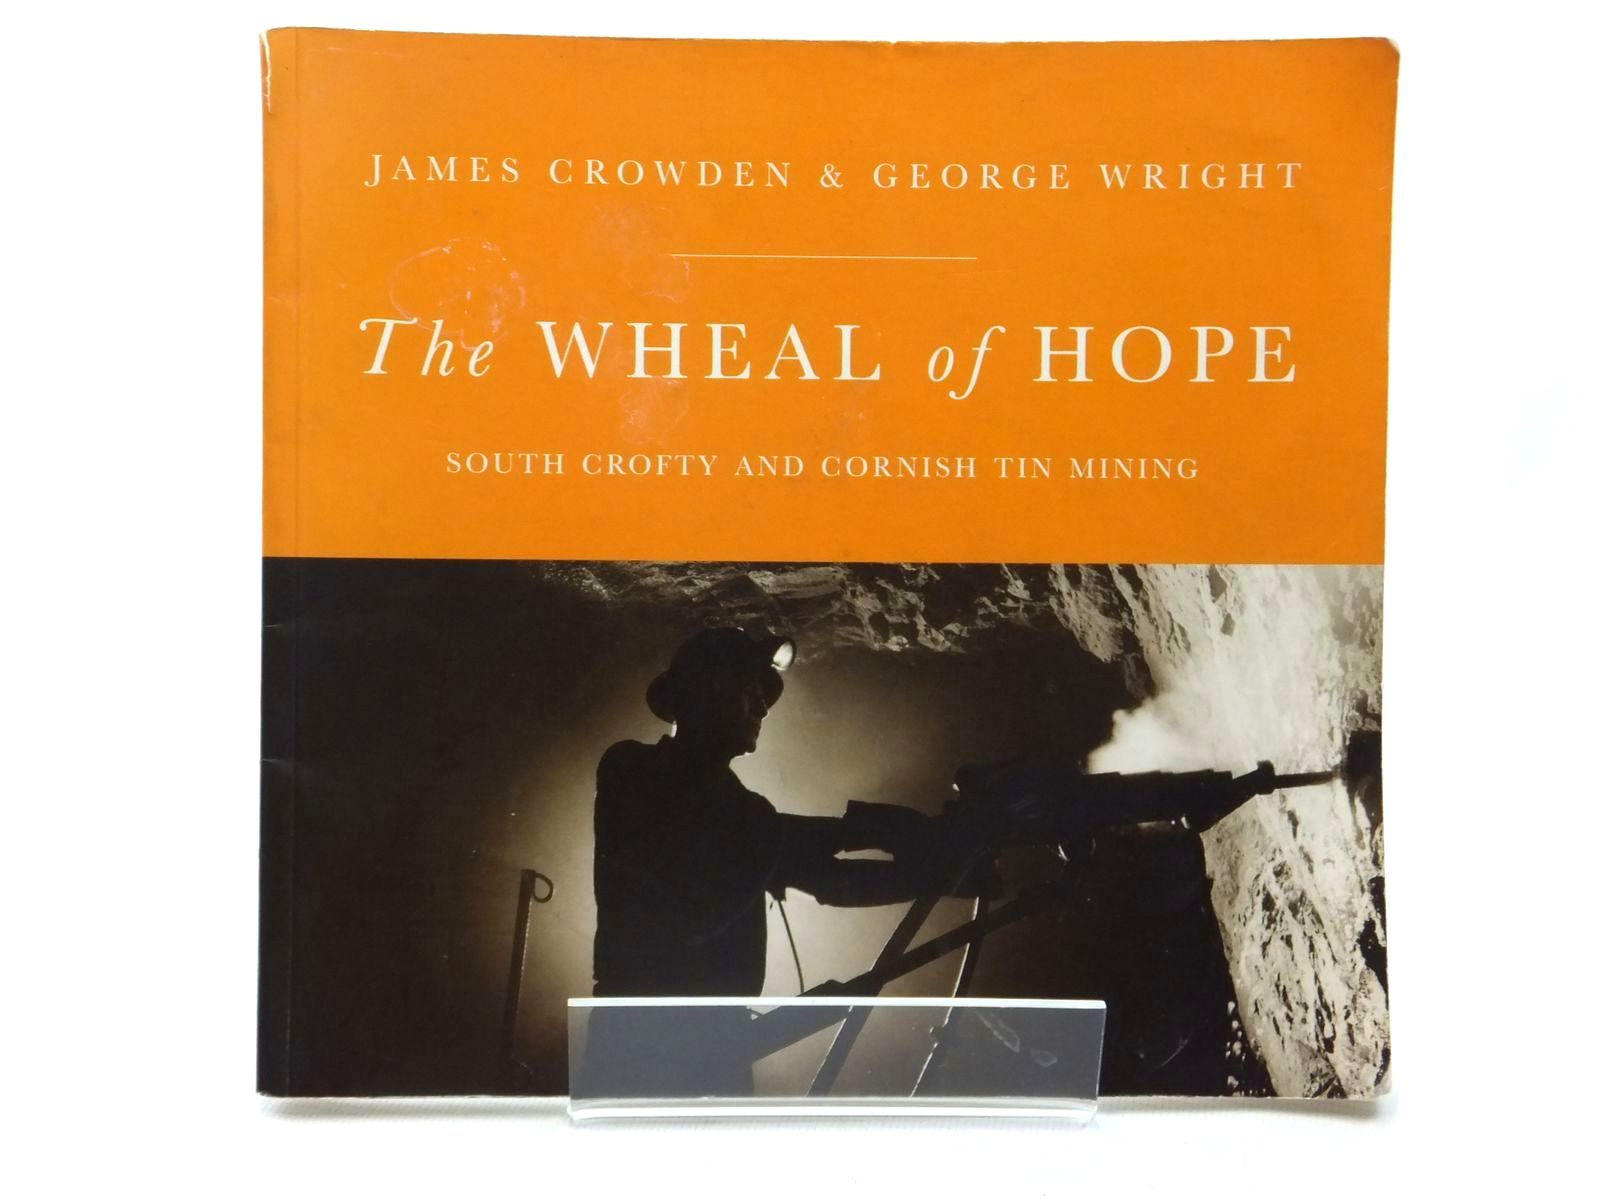 Photo of THE WHEAL OF HOPE SOUTH CROFTY AND CORNISH TIN MINING written by Crowden, James published by Agre Books (STOCK CODE: 1609983)  for sale by Stella & Rose's Books